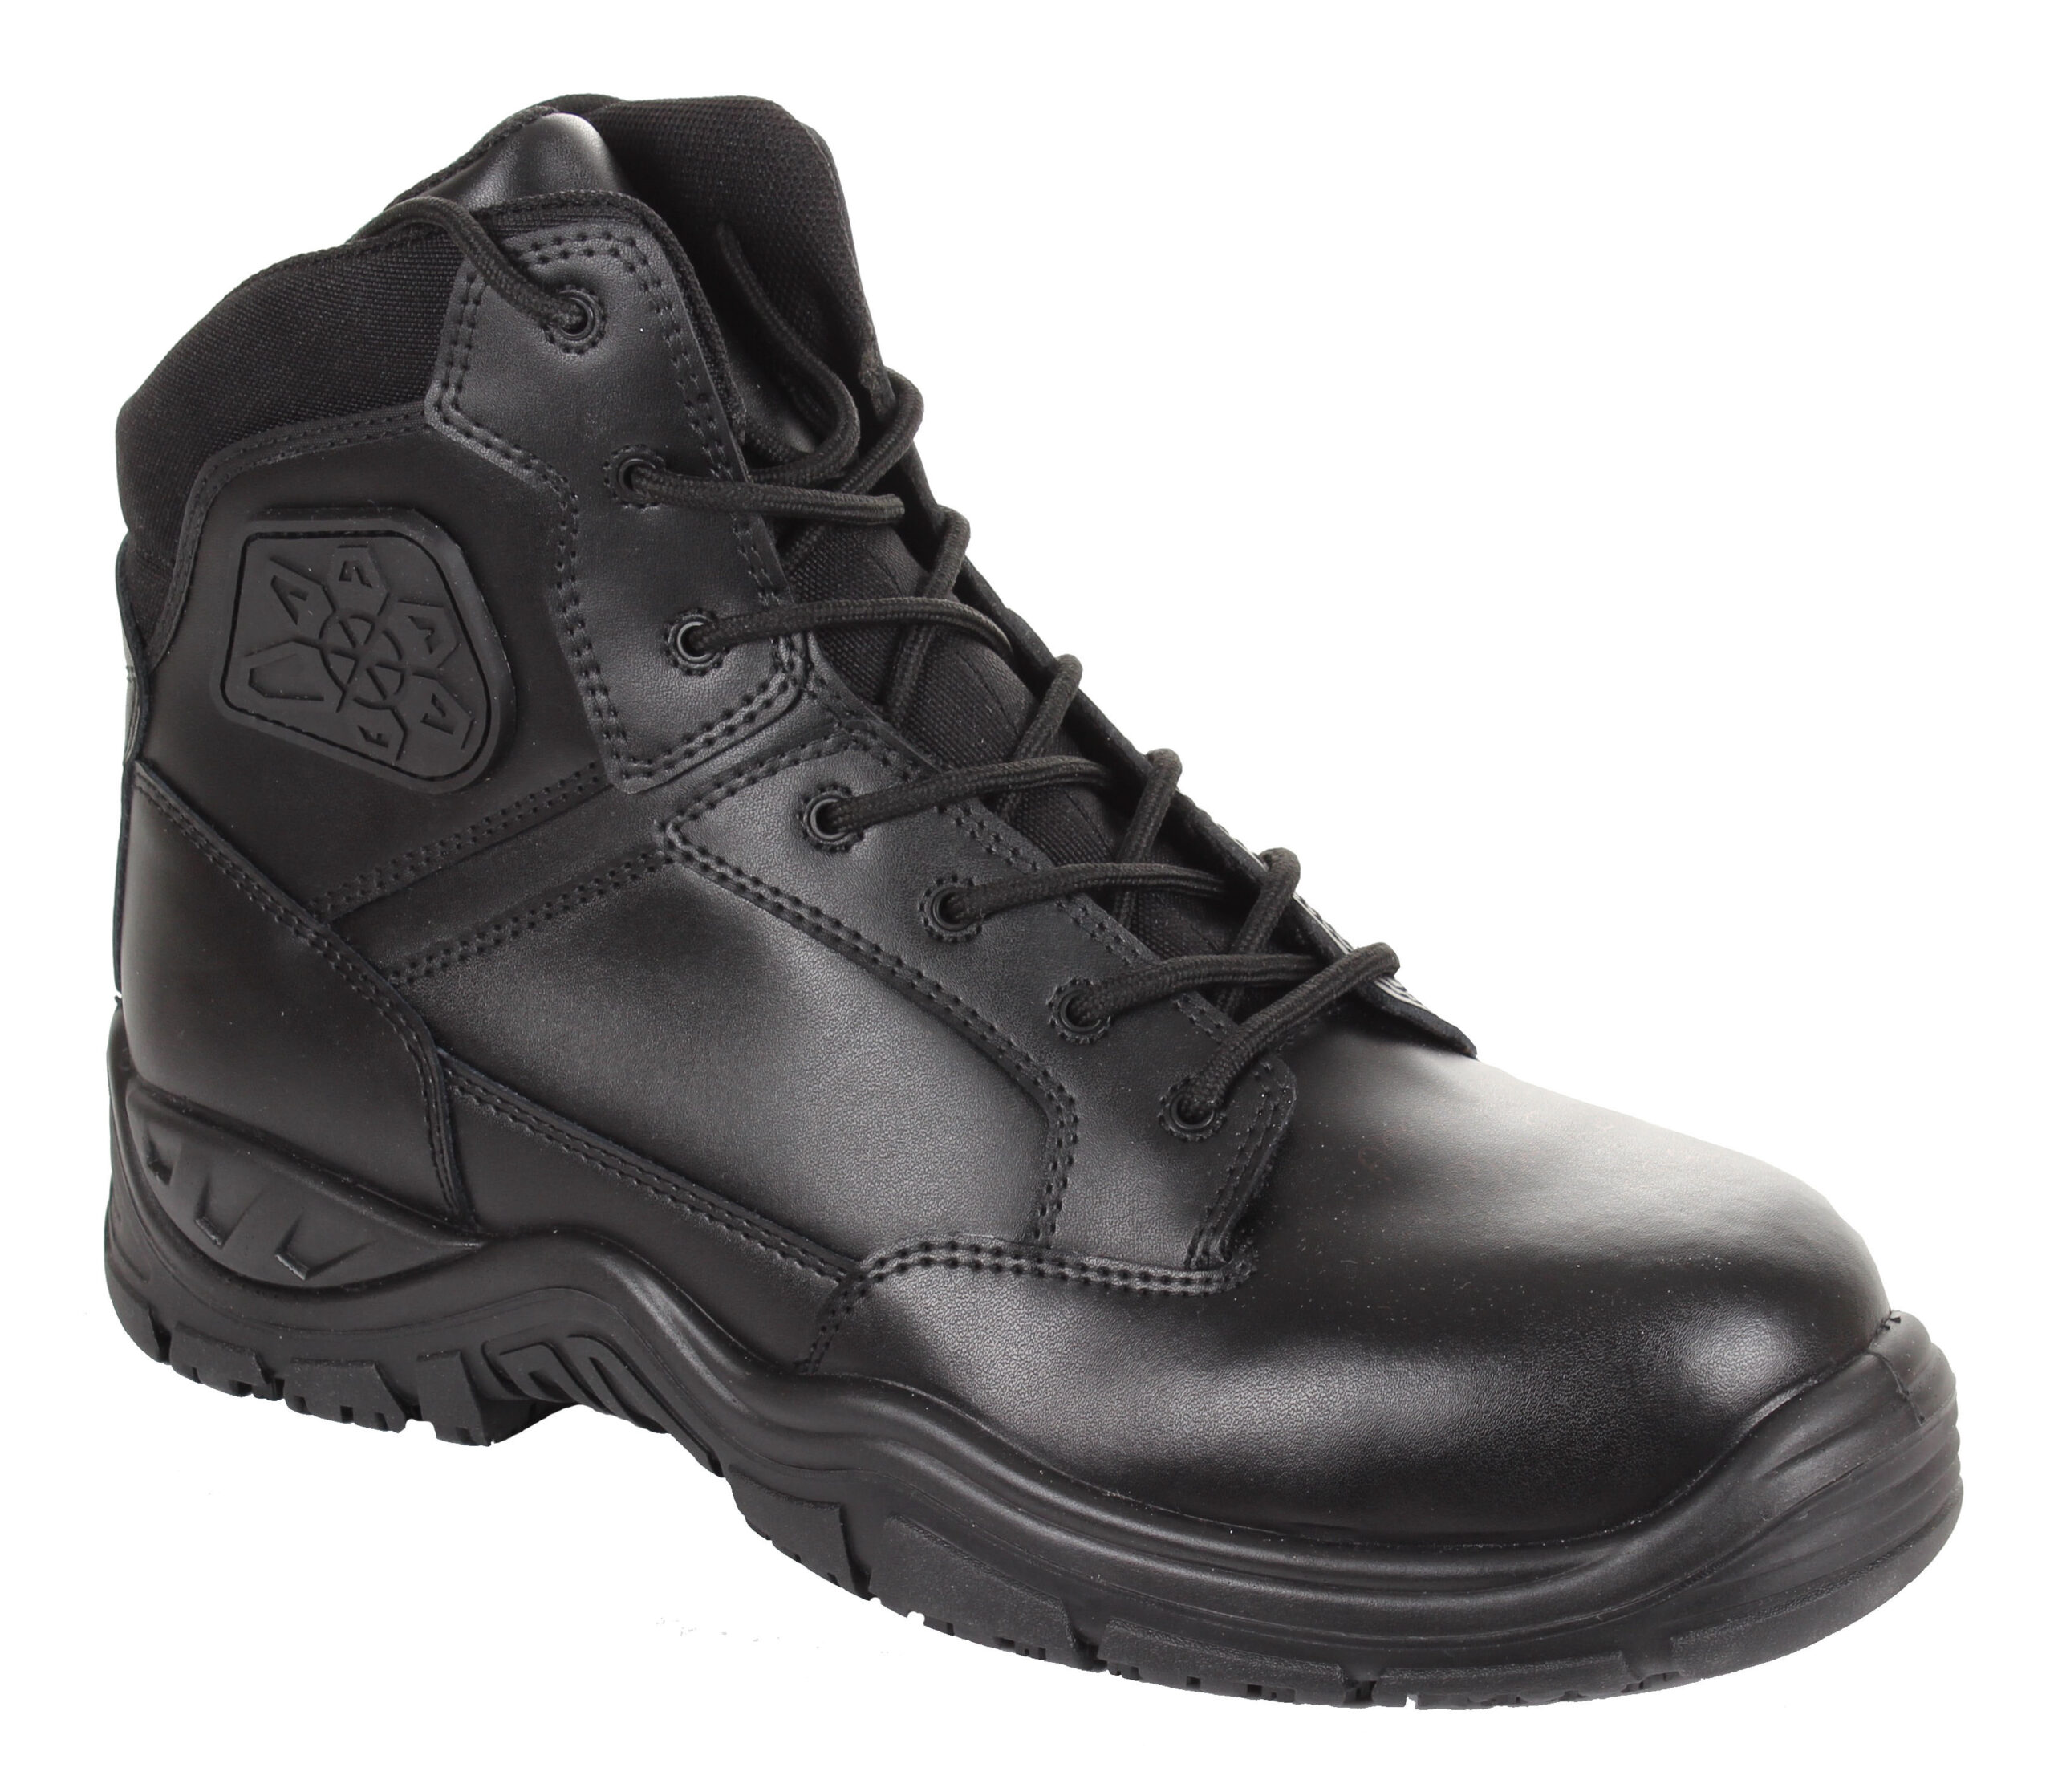 Emergency Service Safety Hiker Boot